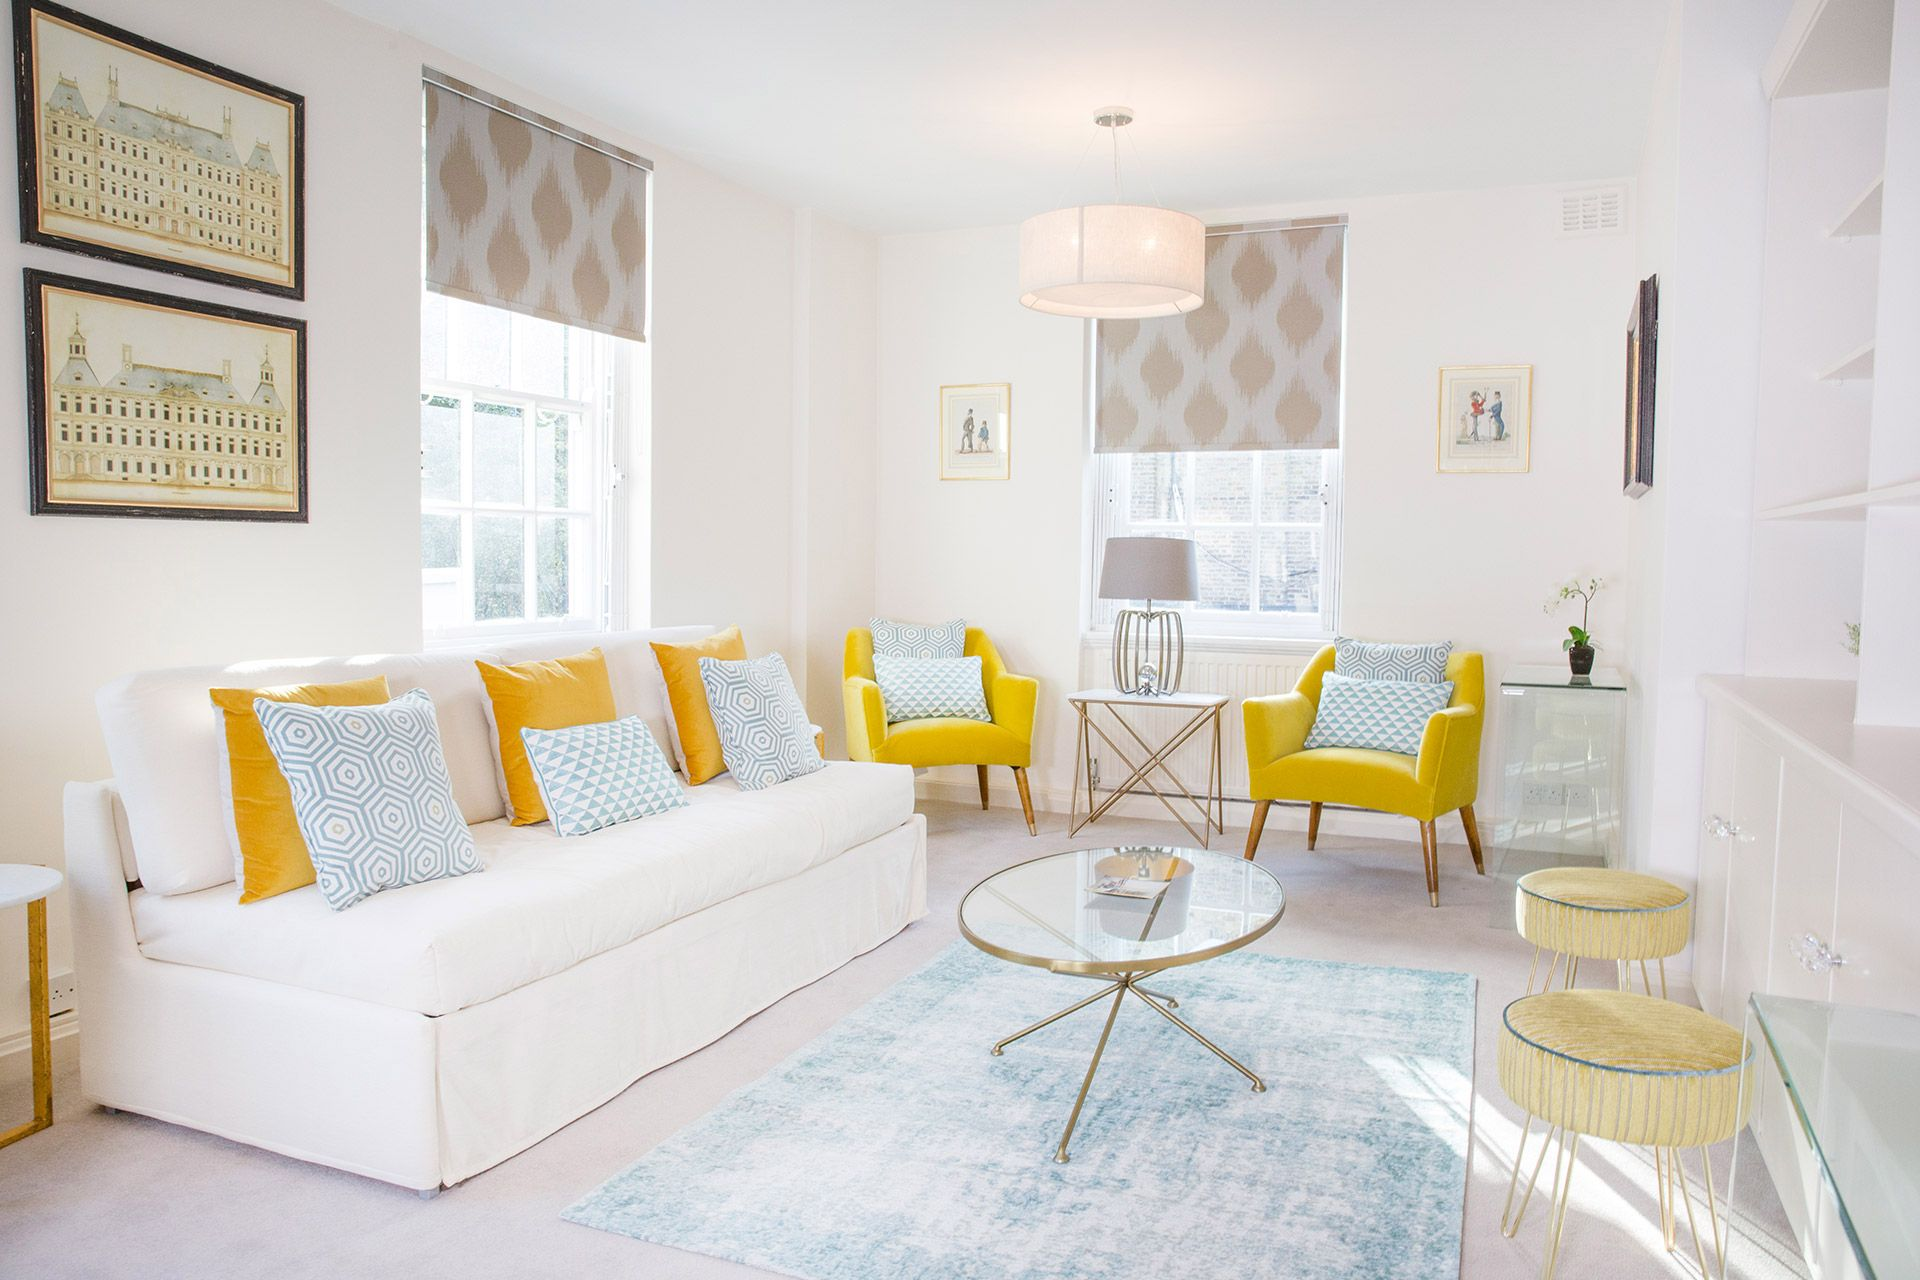 Take advantage of the huge last-minute savings on our London vacation rentals with our January sales, and book a London Perfect getaway for the New Year.  #visitlondon #londonvacationrental #wintersales #januarysavings #londongetaway #londonholiday